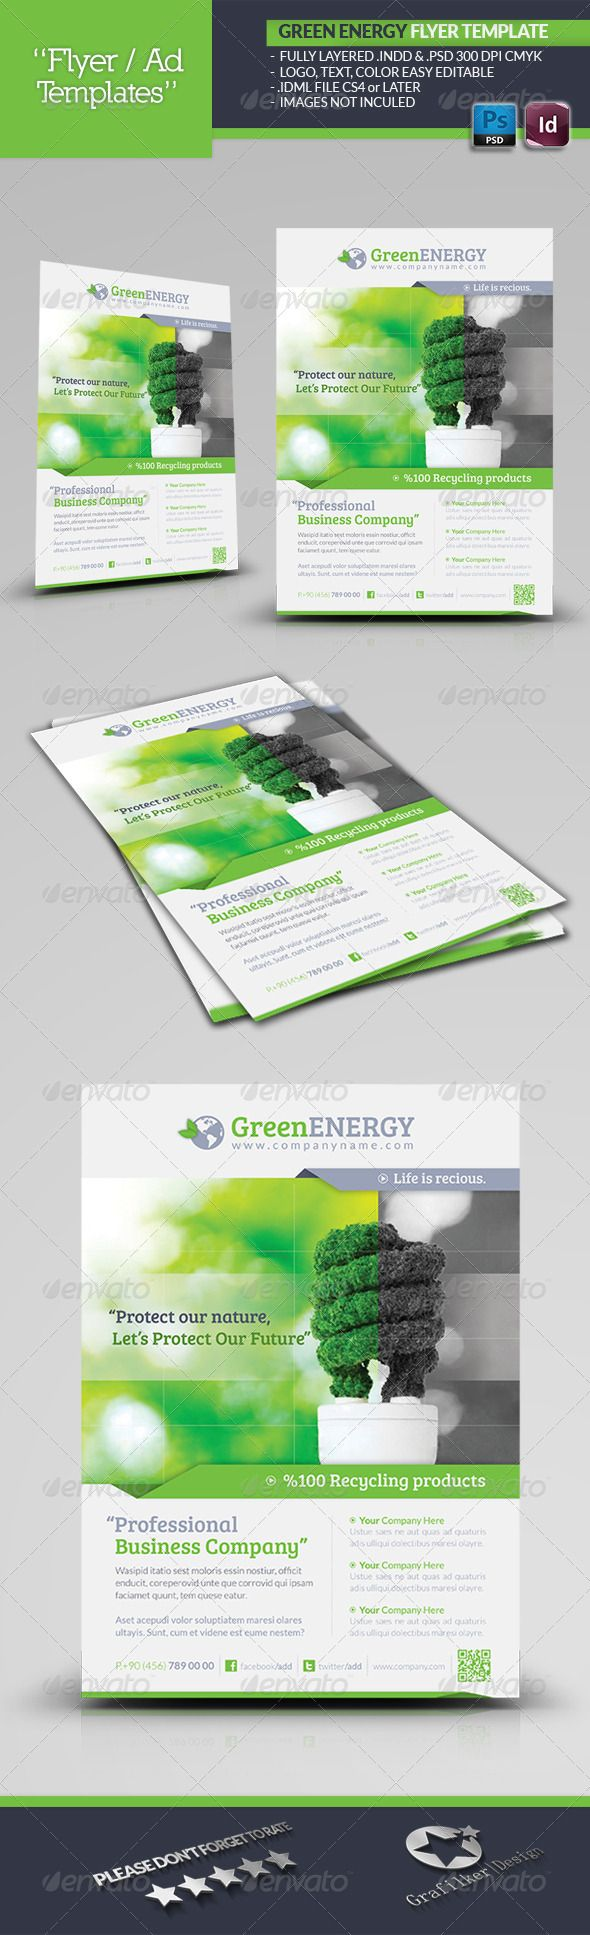 Green Energy Flyer Psd Template  Only Available Here  Http